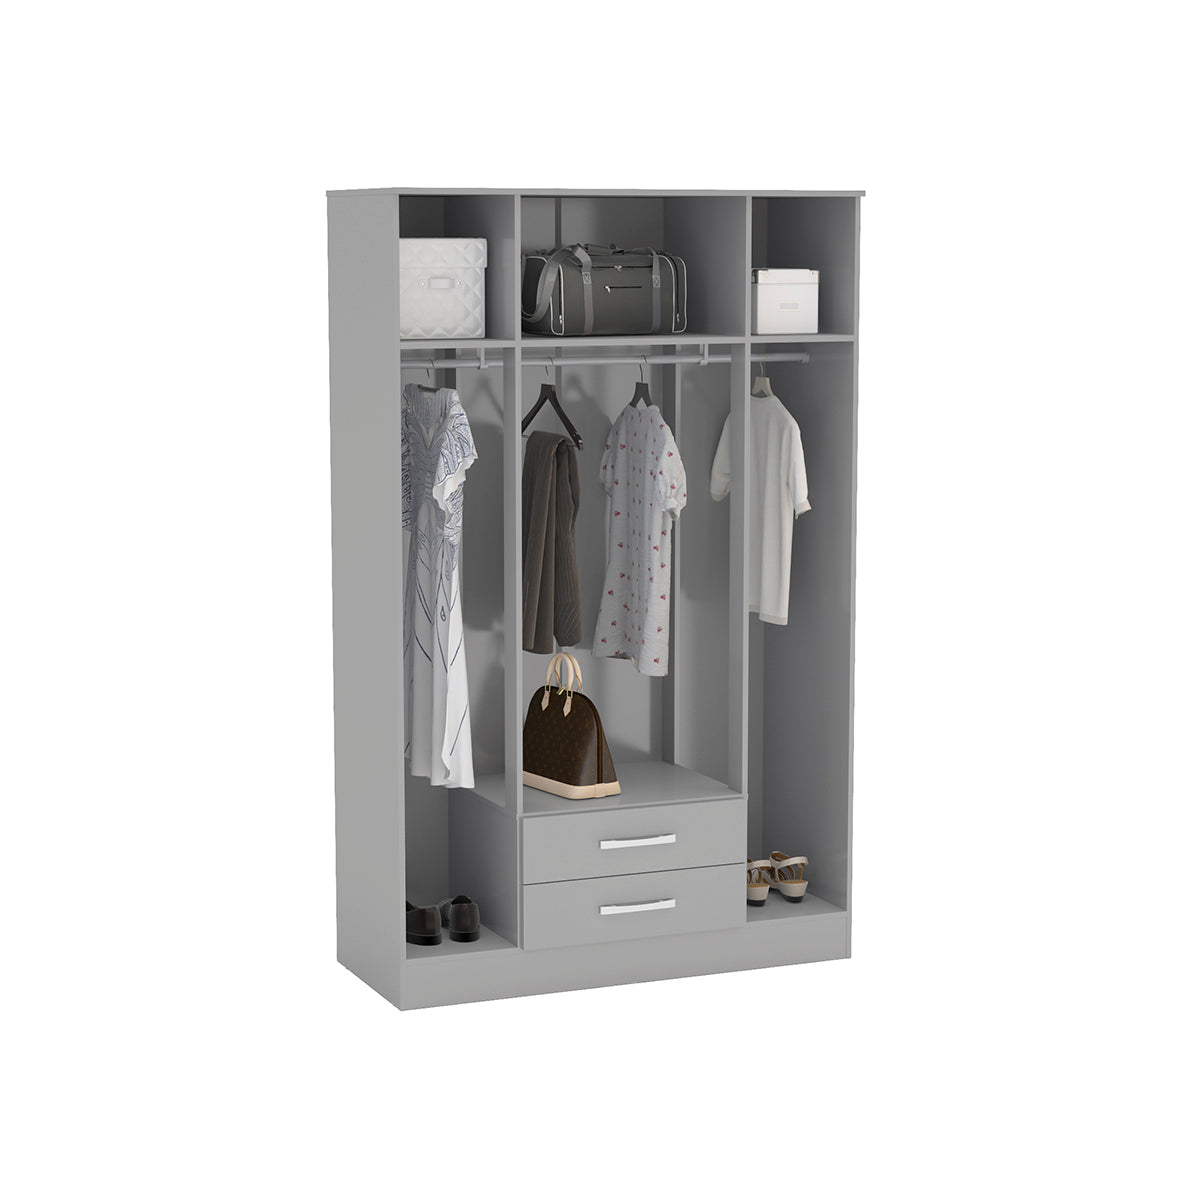 Heath 4 Door 2 Drawer Wardrobe with Mirror in Grey - Ezzo